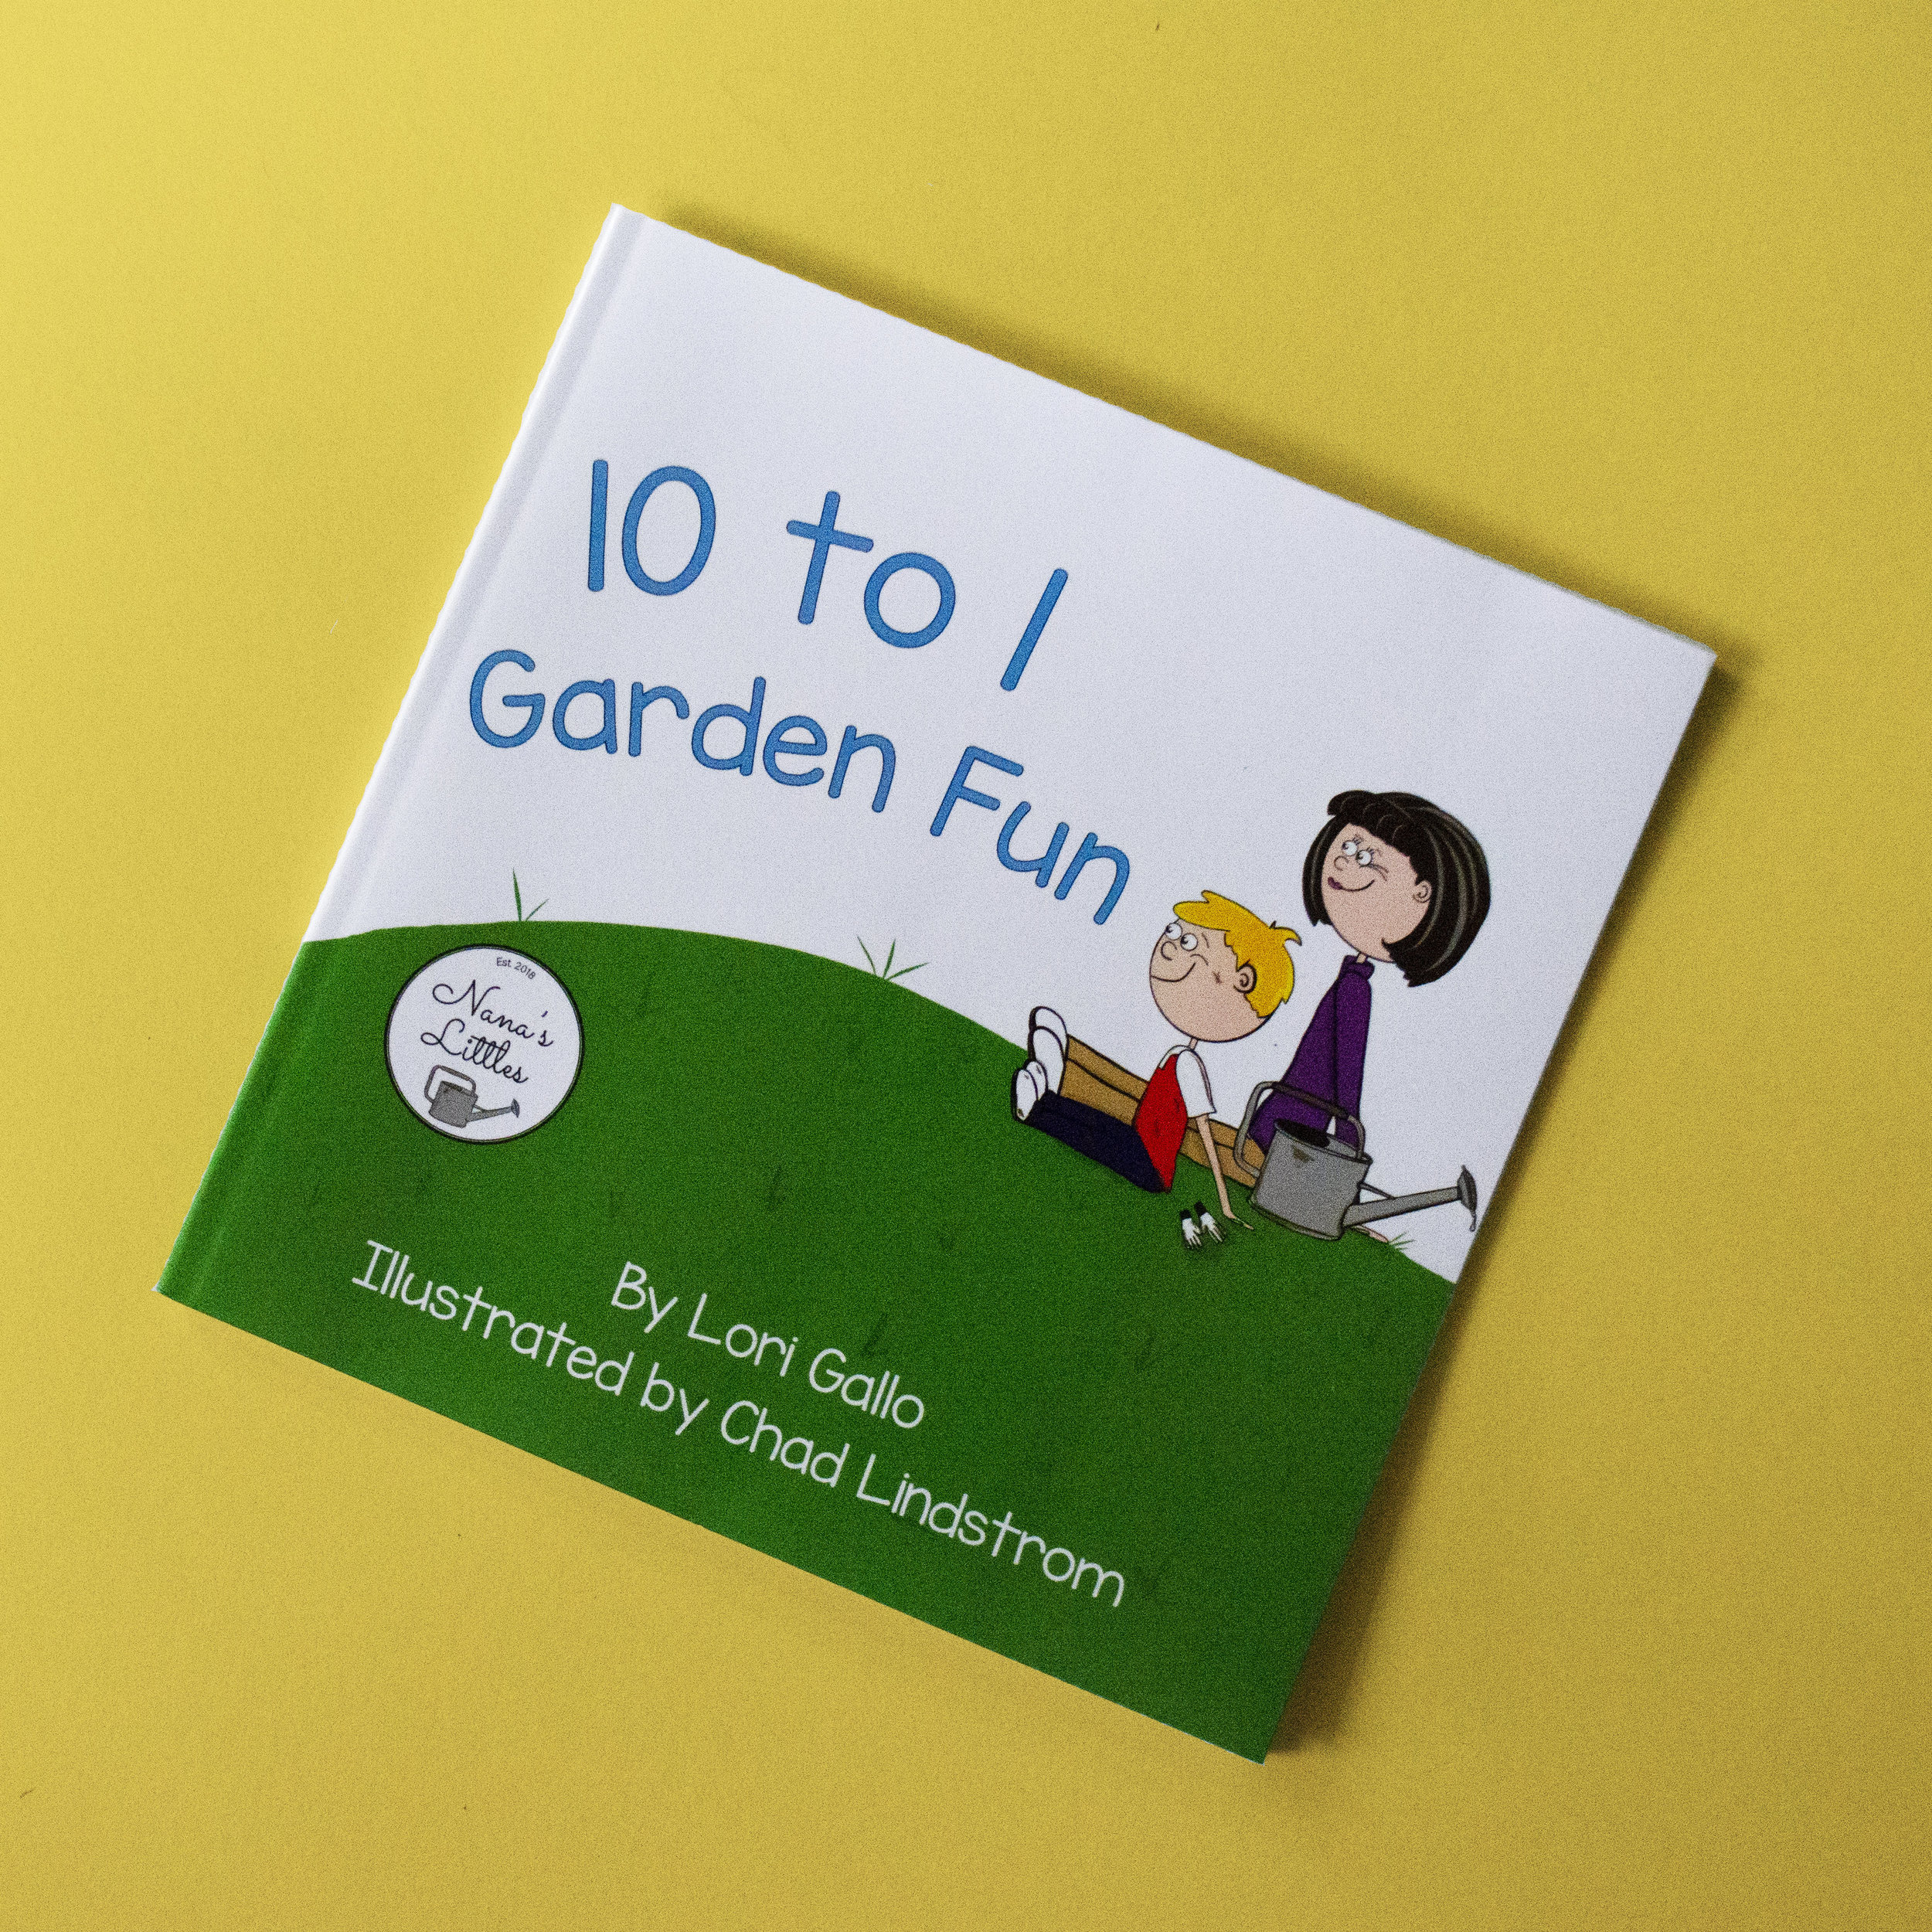 10 to 1 Garden Fun - Lori Gallo - Max is learning many important things while helping his Nana in her beautiful garden. Join in on the fun as Max helps his Nana build her garden under the sun, while also learning valuable common core standards such as 1 to 1 number correspondence and how to count backward from 10 to 1. In addition, Max will learn about all the essential elements, creatures, processes, and work needed to help grow a garden. This is a fantastic and fun way to help children, whether in pre-school or, primary grades learn these important baseline knowledge requirements. It explores the relationship between Max, Papa, and Nana while also exploring the relationship between essential elements to grow a garden.Lori Gallo is a kindergarten teacher who has passionately taught for over 26 years. She delights in gardening and children, particularly her grandchildren. Lori wrote 10 to 1 Garden Fun to promote, in an engaging way, the Common Core Standard of 1 to 10 Number Correspondence.Learn more at www.mrslorigallo.com